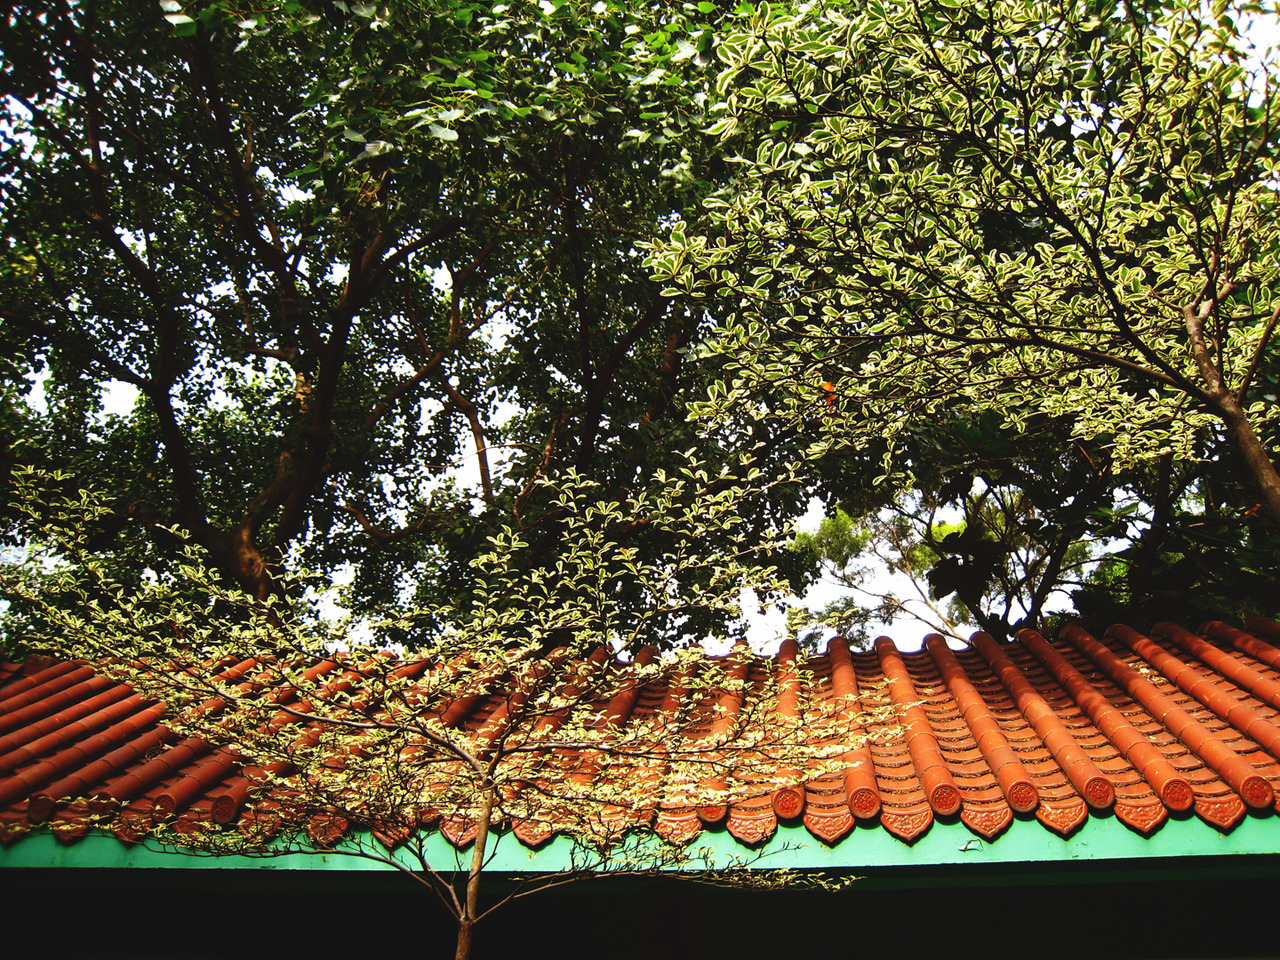 Roof spirits    Behind the shrubbery maze of Kowloon Park there is a path alongside the bamboo forest.   Look up.